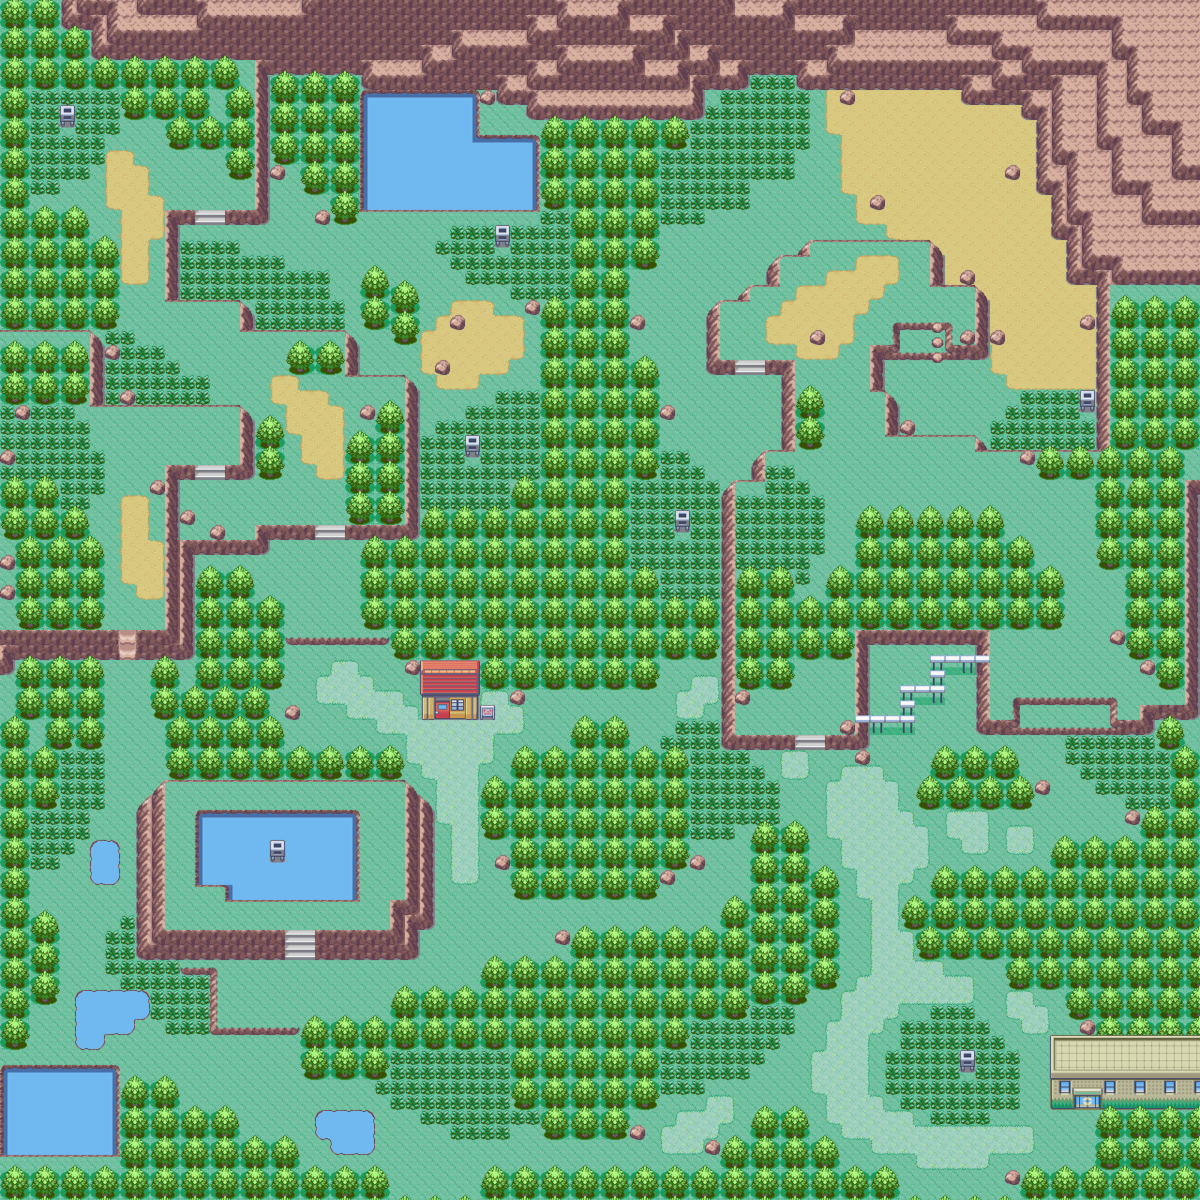 Pokémon Ruby and Sapphire/Safari Zone — StrategyWiki, the ... on route 6 map, route 20 map, safari trees, dark cave map, pokemon soul silver map, route 5 map, victory road map, safari flowers, shoal cave map, route 13 map, route 11 map, route 30 map, new mauville map, route 33 map, route 12 map, route 10 map, pokemon emerald map, route 17 map, pokemon safari map, route 1 map,